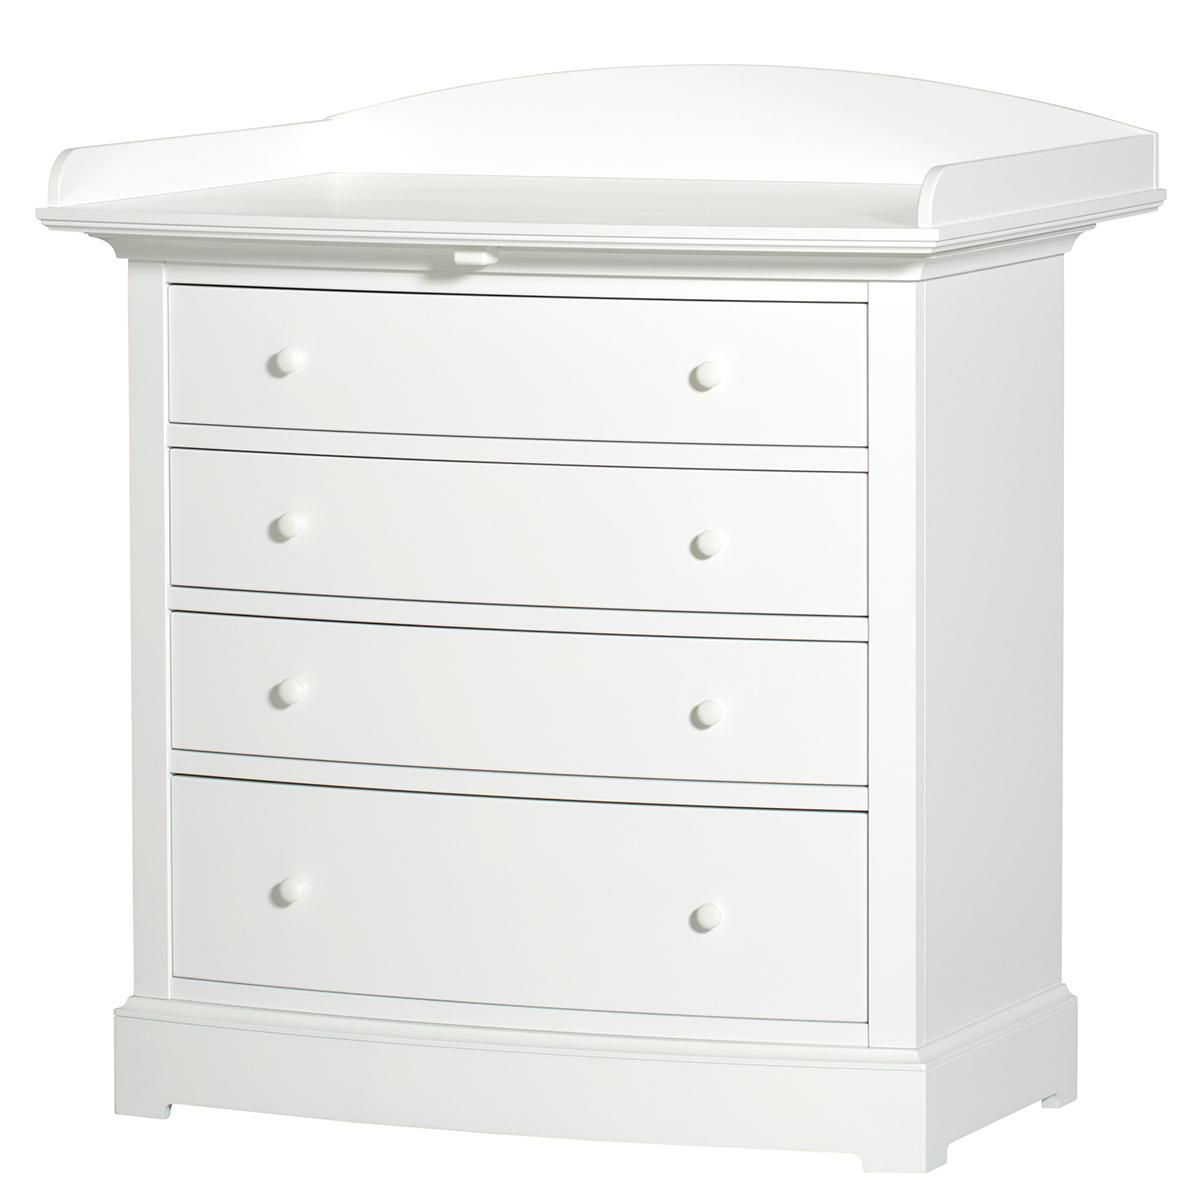 Commode à langer SEASIDE Oliver Furnitureblanc